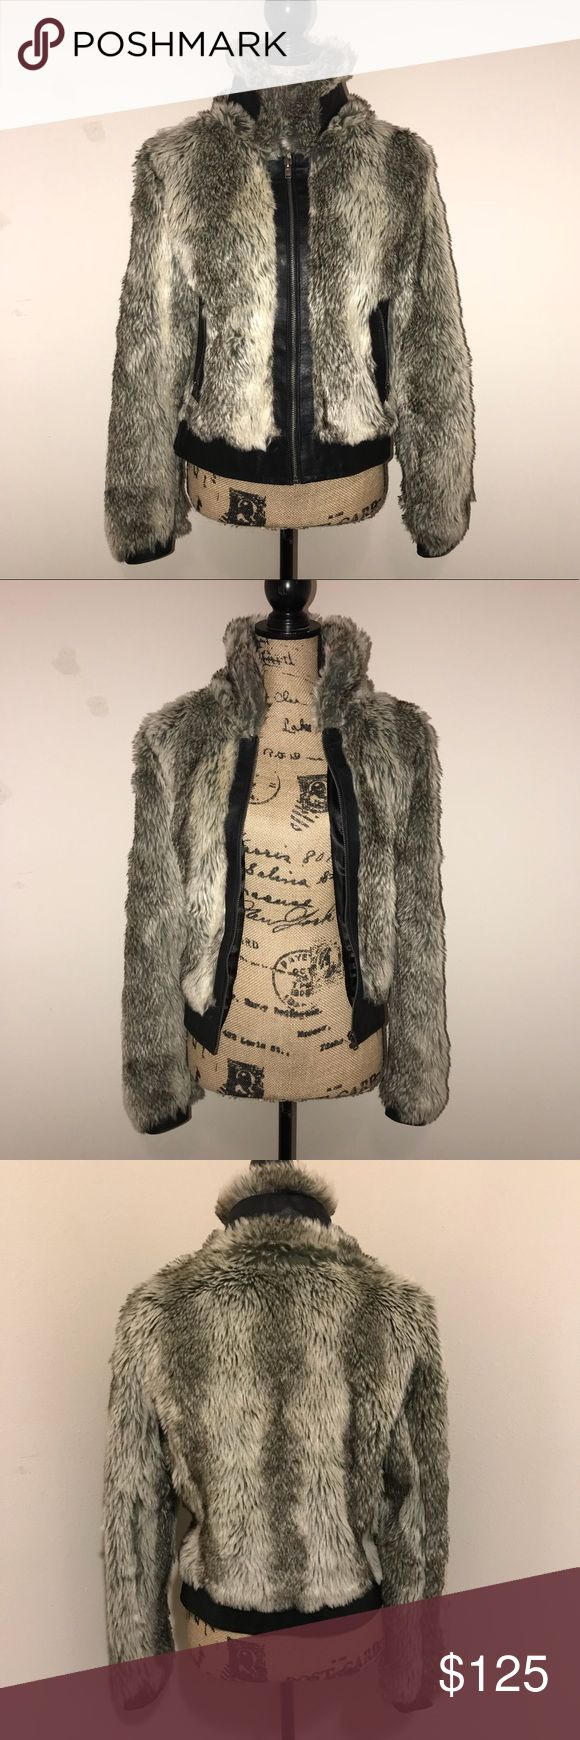 STYLE CANVAS - Soft Vegan Faux Fur Jacket Turn heads this season with a warm, soft, sexy fitted fur jacket. Tapered at the waist and full in the arms. Ostrich embossed leather trim, polyester liner. Great statement piece, especially for holiday parties & New Years. Bought in Germany last year, and very well cared for. Fits 2, 4 and 6 just fine! Style Canvas Jackets & Coats